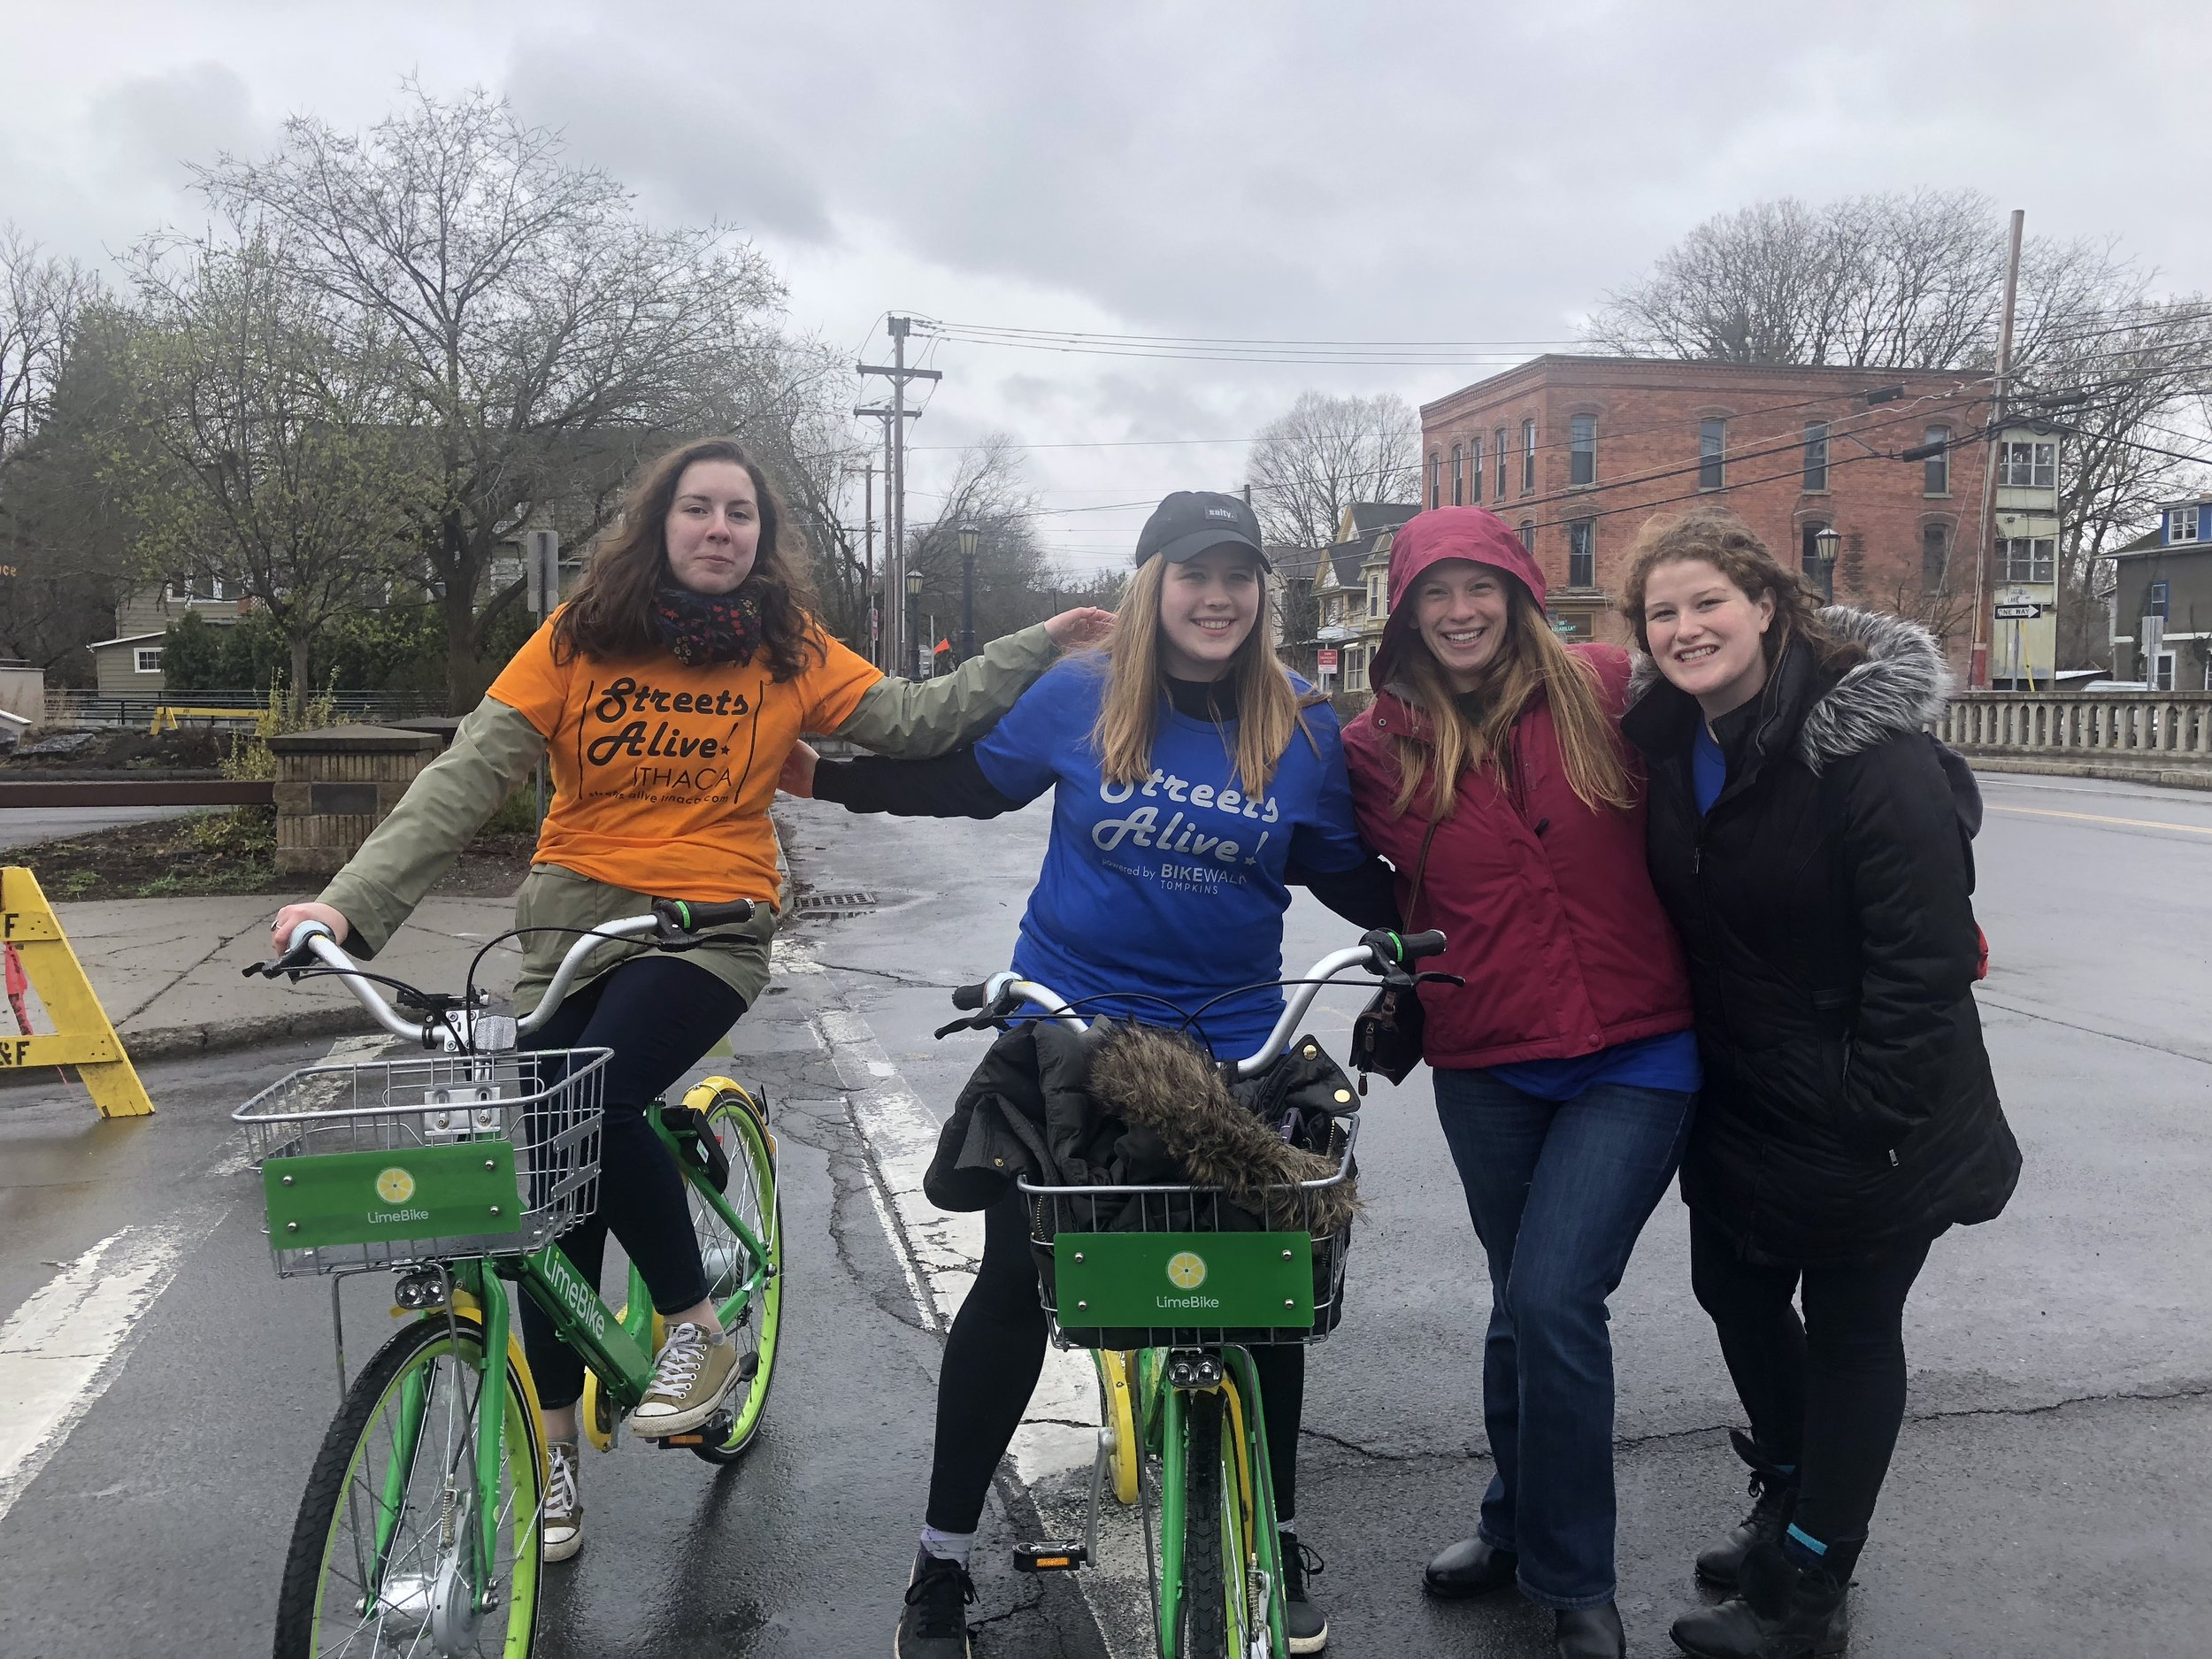 Ithaca College students Stephanie Mooney and Christie Bednarz pose on LimeBikes with two friends at StreetsAlive! They volunteered at StreetsAlive! representing their film fraternity, DKA.  Photo: Maggie McAden